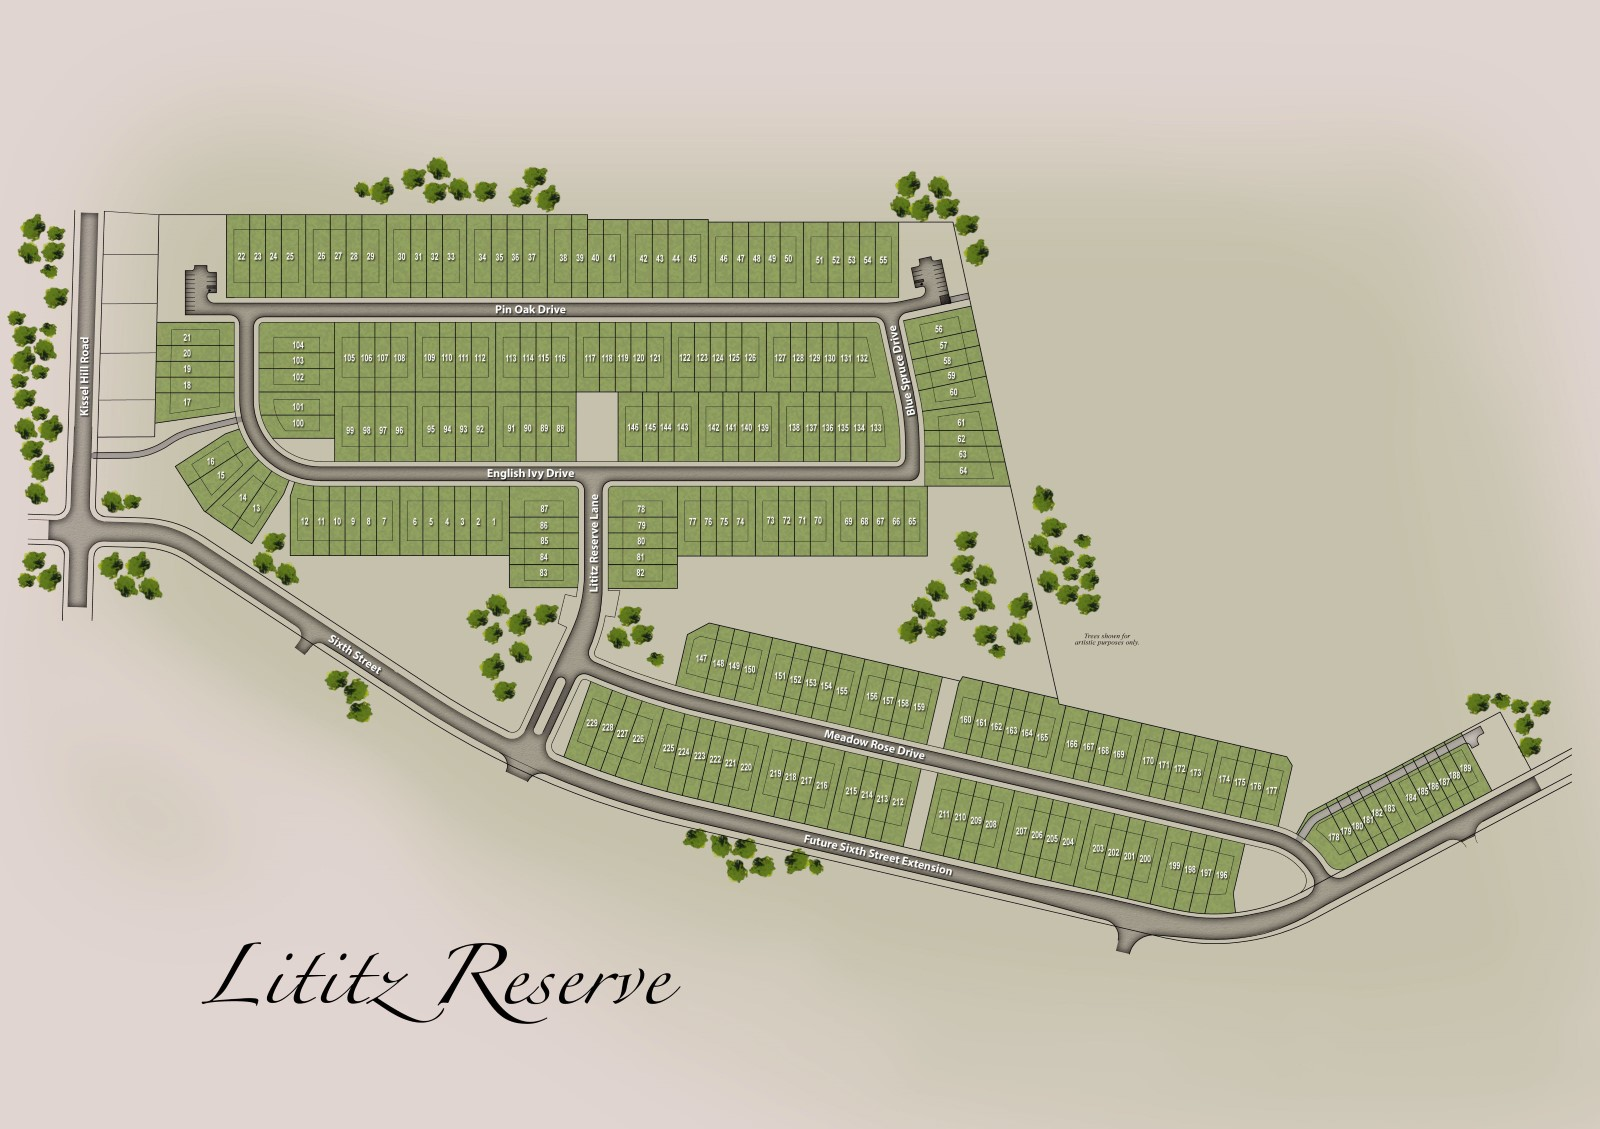 Lititz Reserve Plot Plan